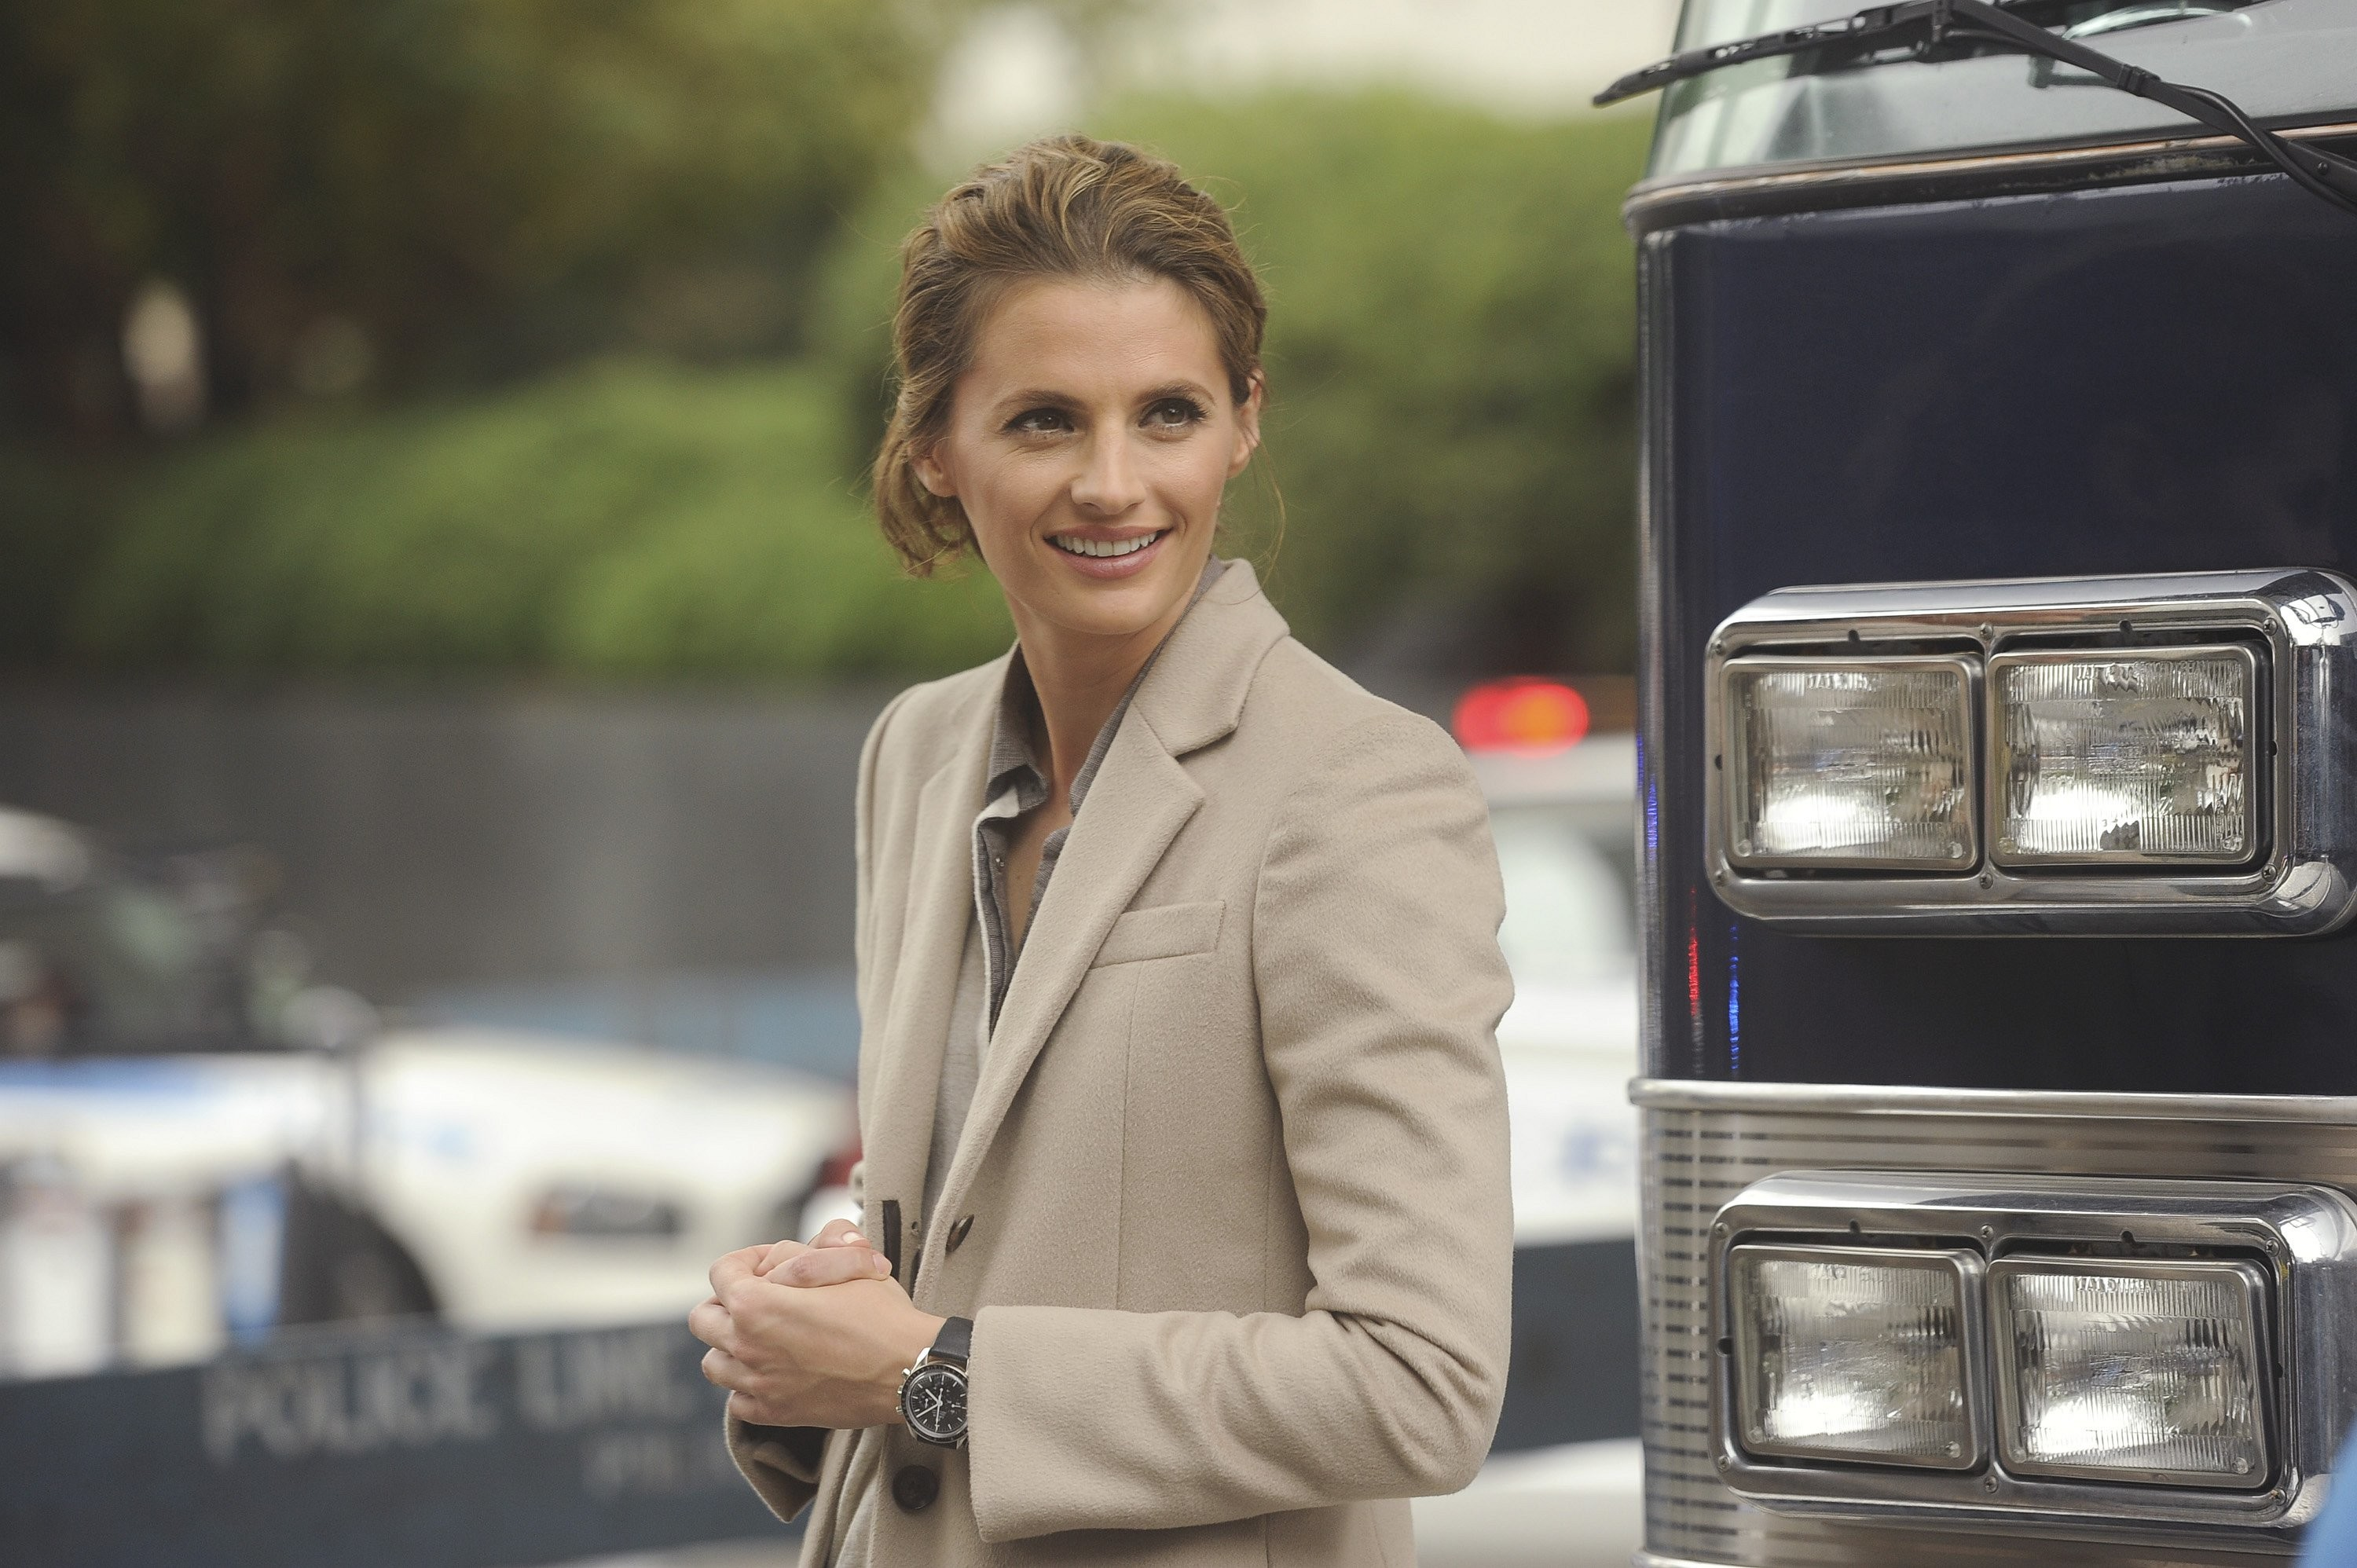 3000x1996 » Behind the scenes | Stana Katic